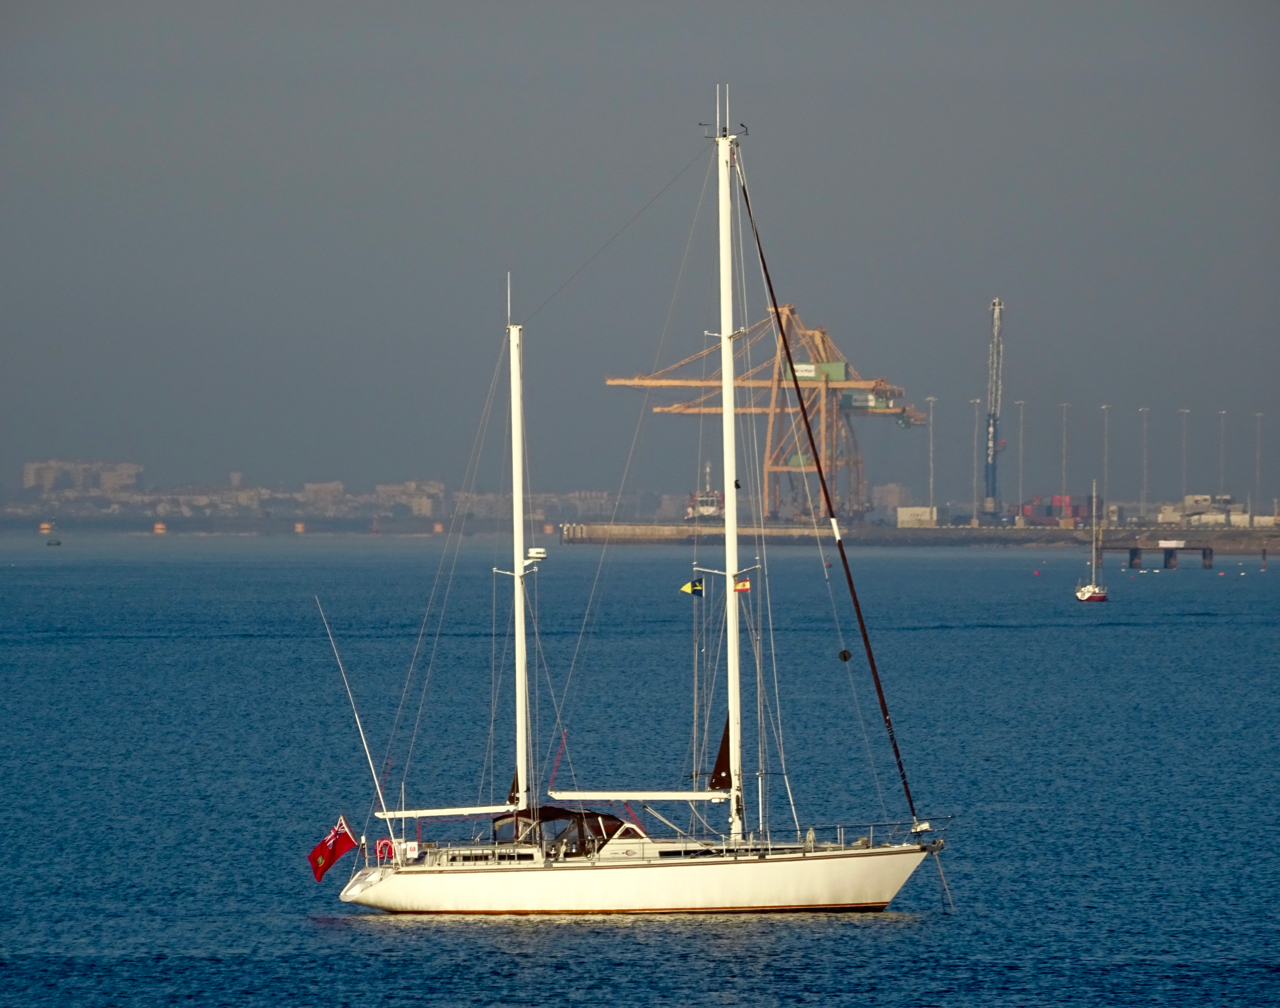 Peregrinus  at anchor in the Odiel river, in front of Mazagón Marina, mancomunidad of Moguer and Palos de la Frontera.  Photo courtesy of Javier Delgado.  Sony DSC-HX60V, 10:14 AM, 17 November 2015